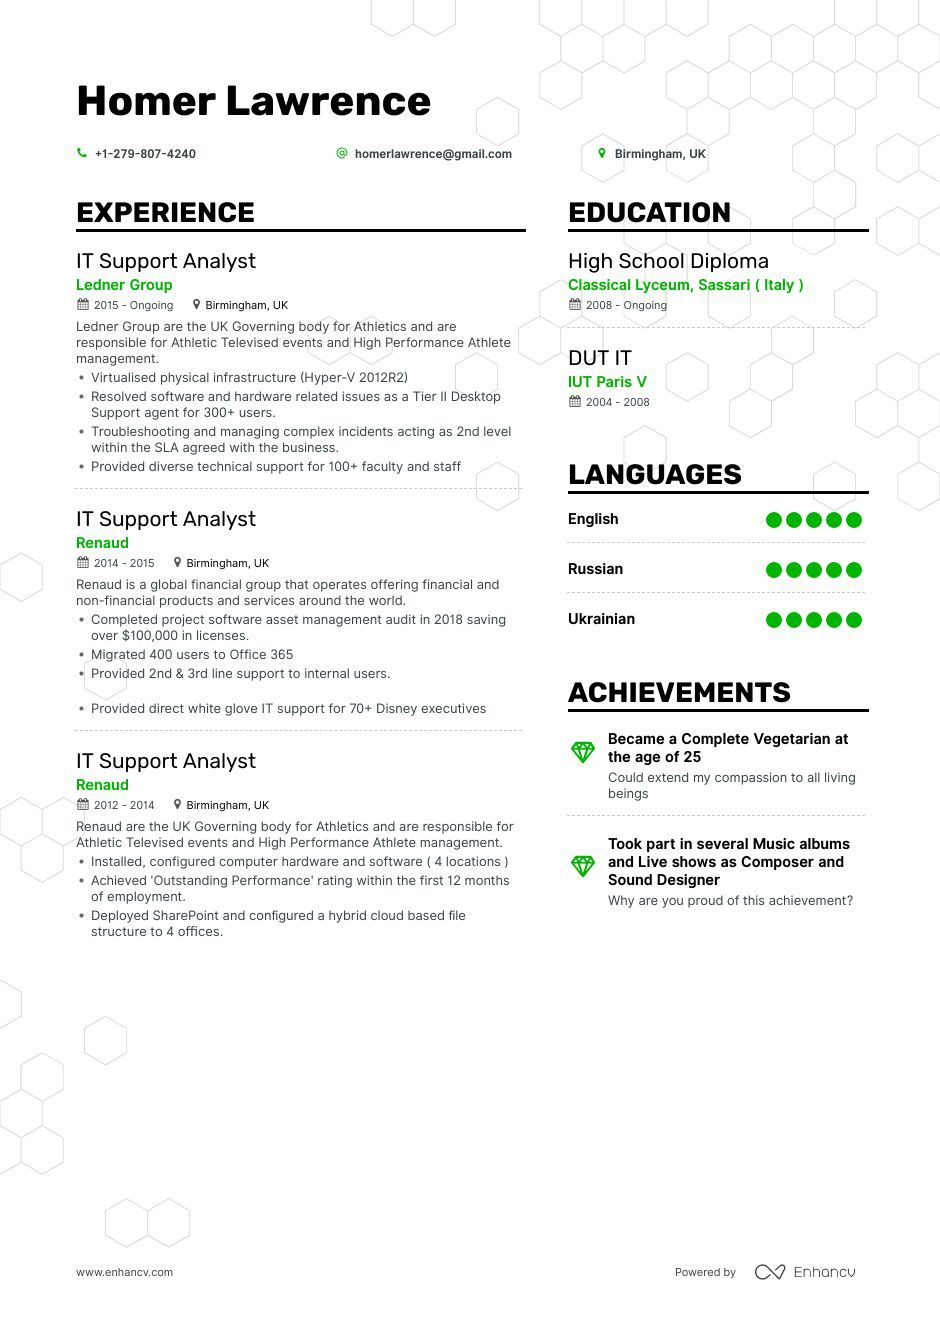 Top It Support Analyst Resume Examples & Samples for 2020